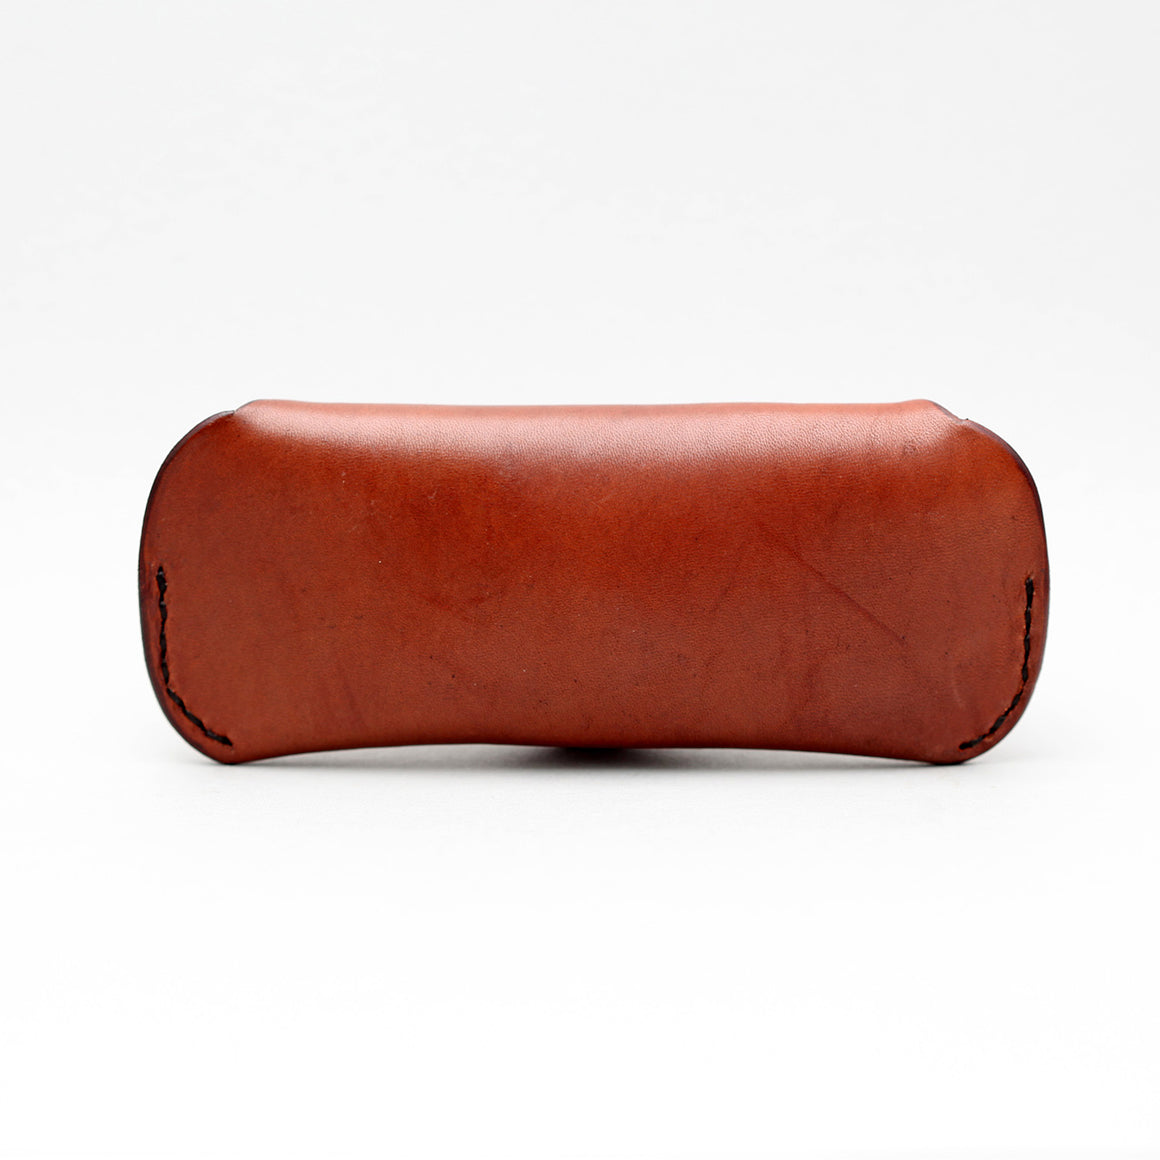 SUNGLASSES CASE IN DARK BROWN LEATHER